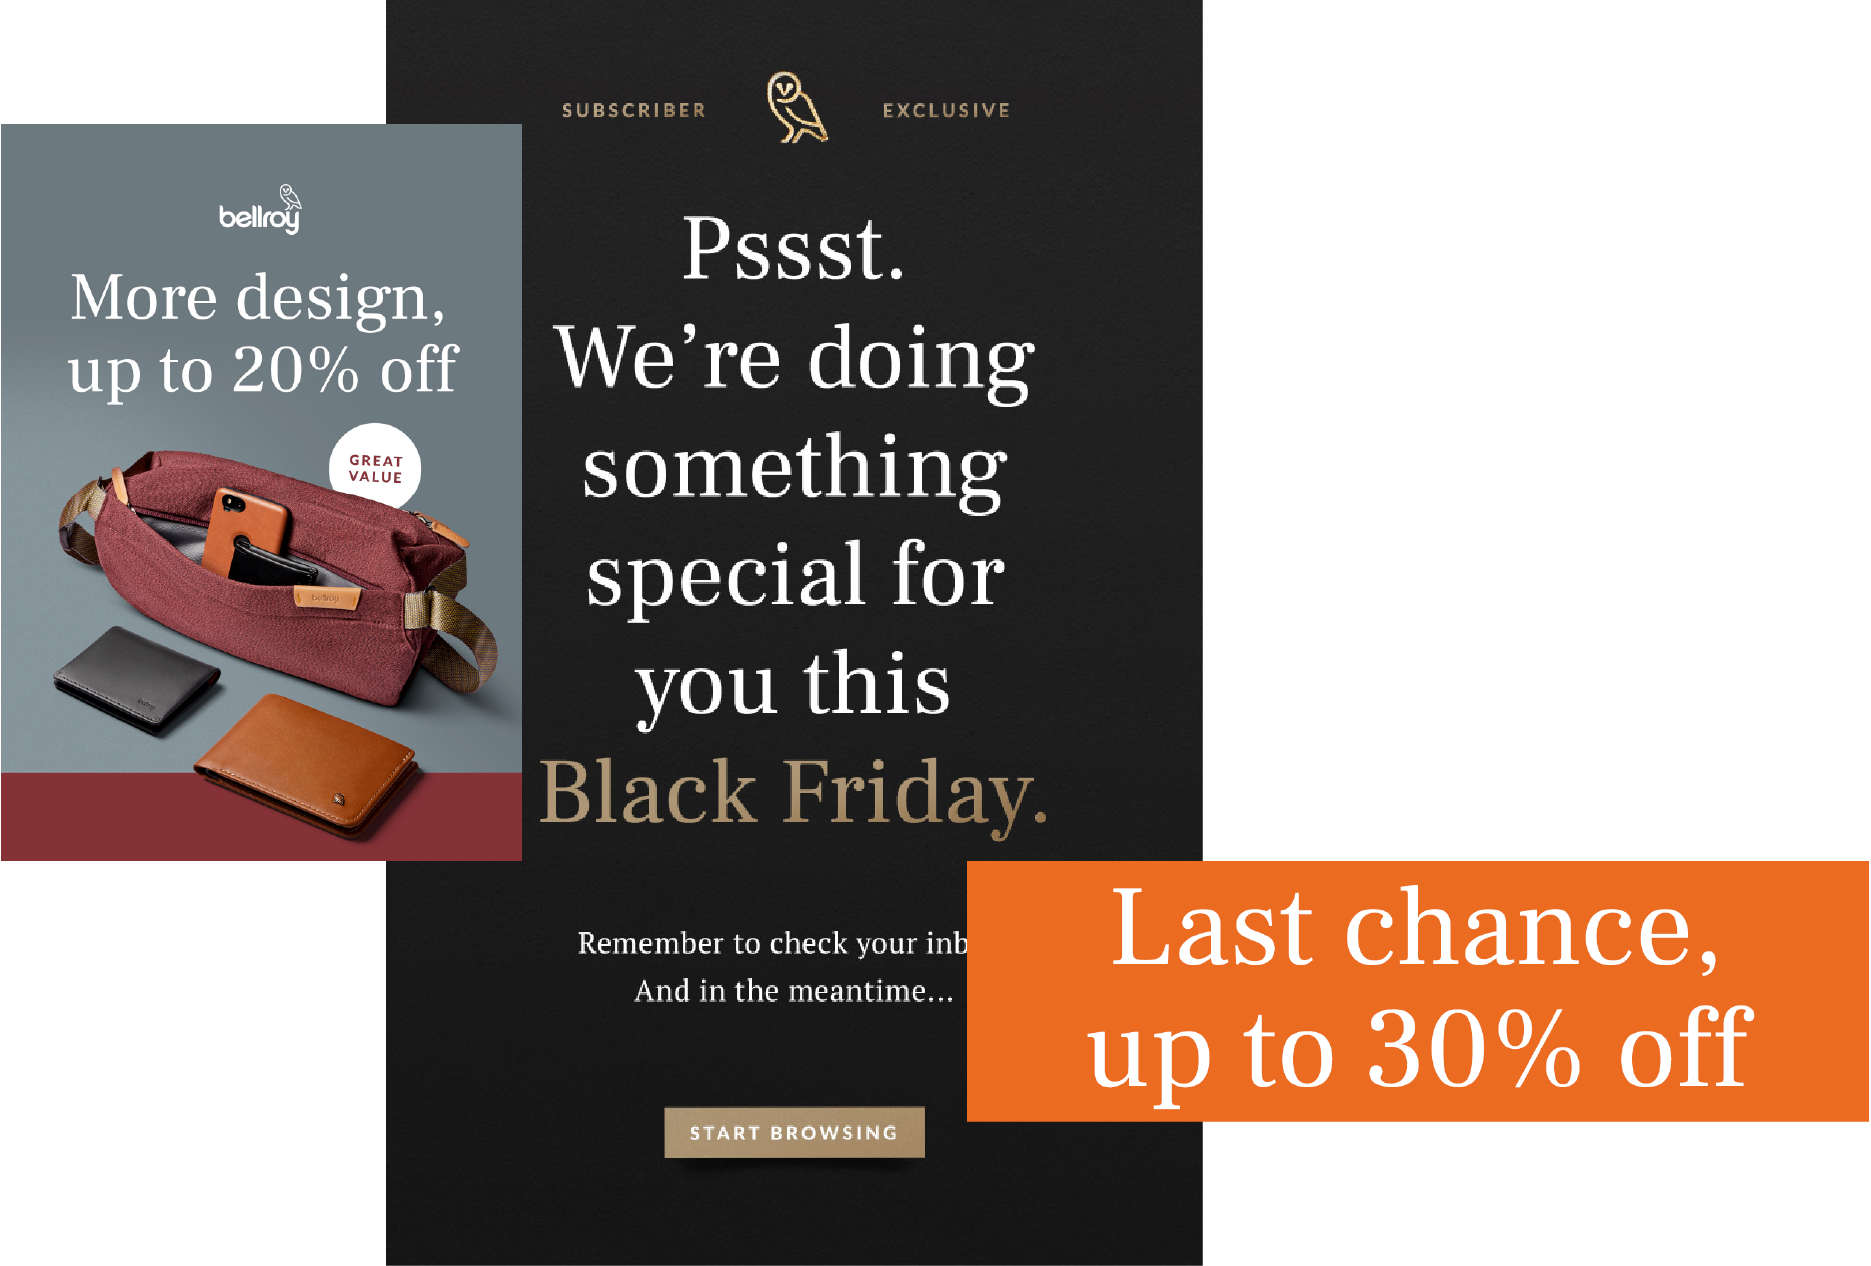 How Bellroy handled Black Friday with cart promotions and gift cards?